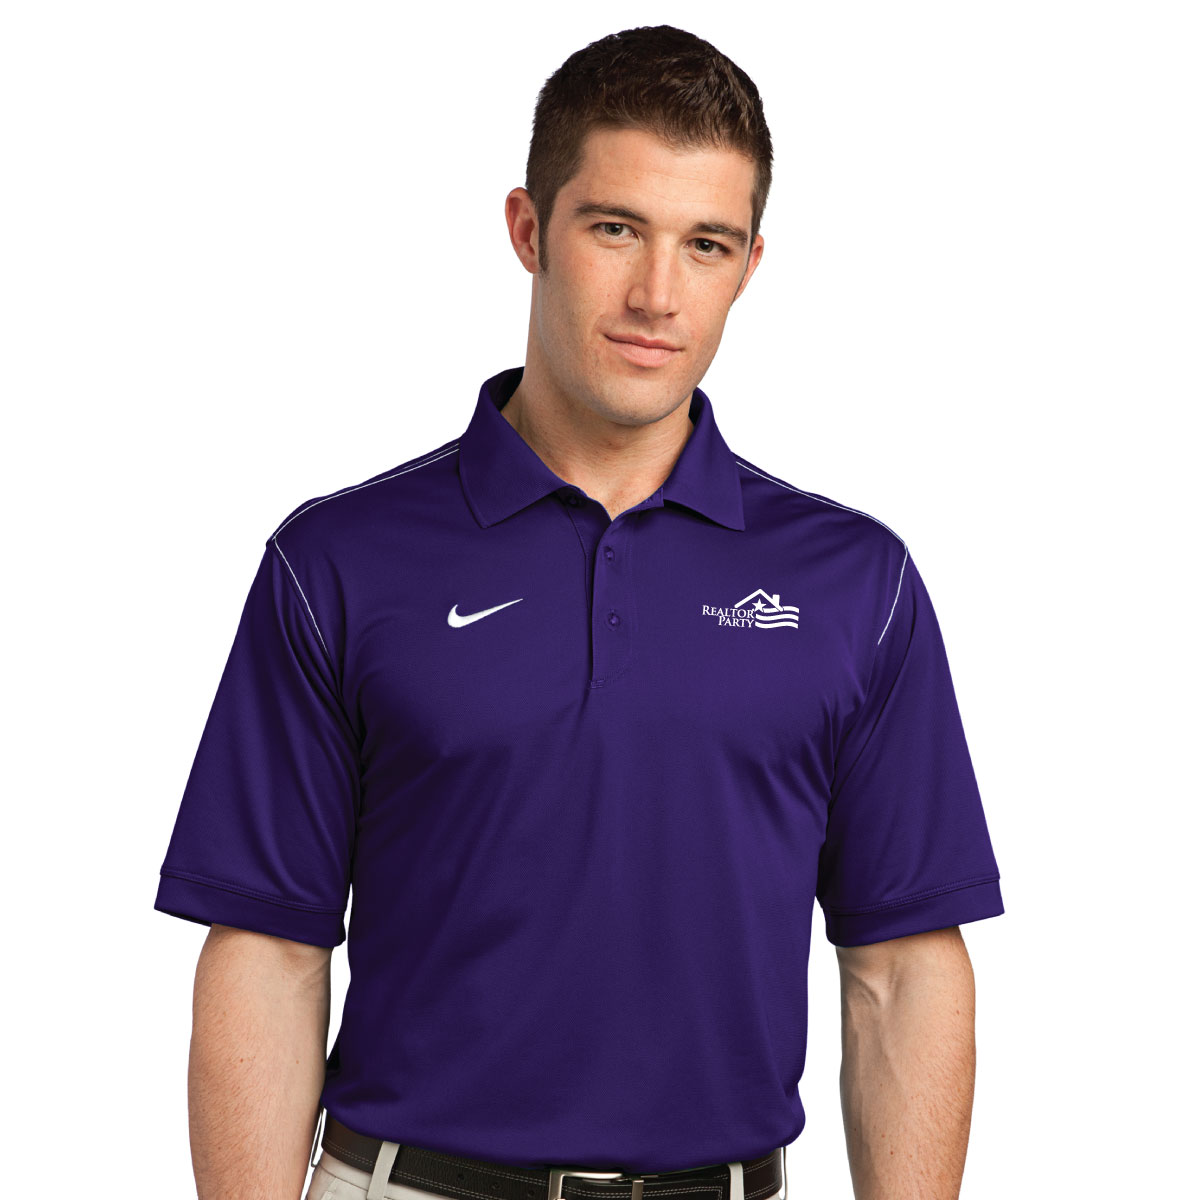 REALTOR® Party Nike Golf Dri-FIT Sport Swoosh Pique Polo Polos,Nikes,Swoshes,Golfs,Stripes